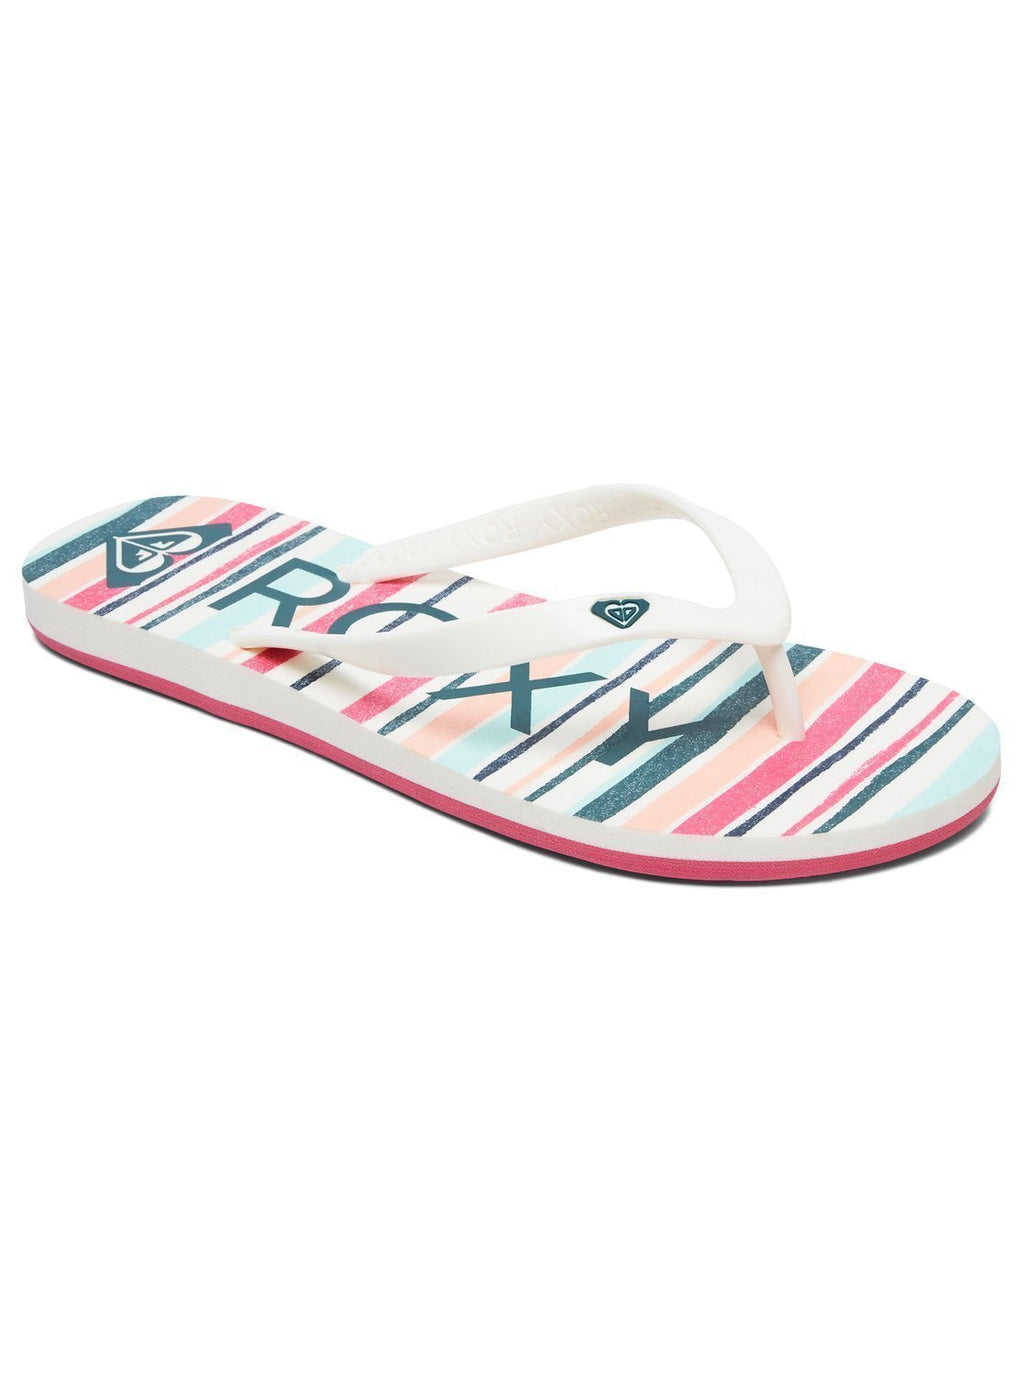 -ROXY- Women's - Sandals 6 / Stripe Barely Pink Z-ROXY - Tahiti